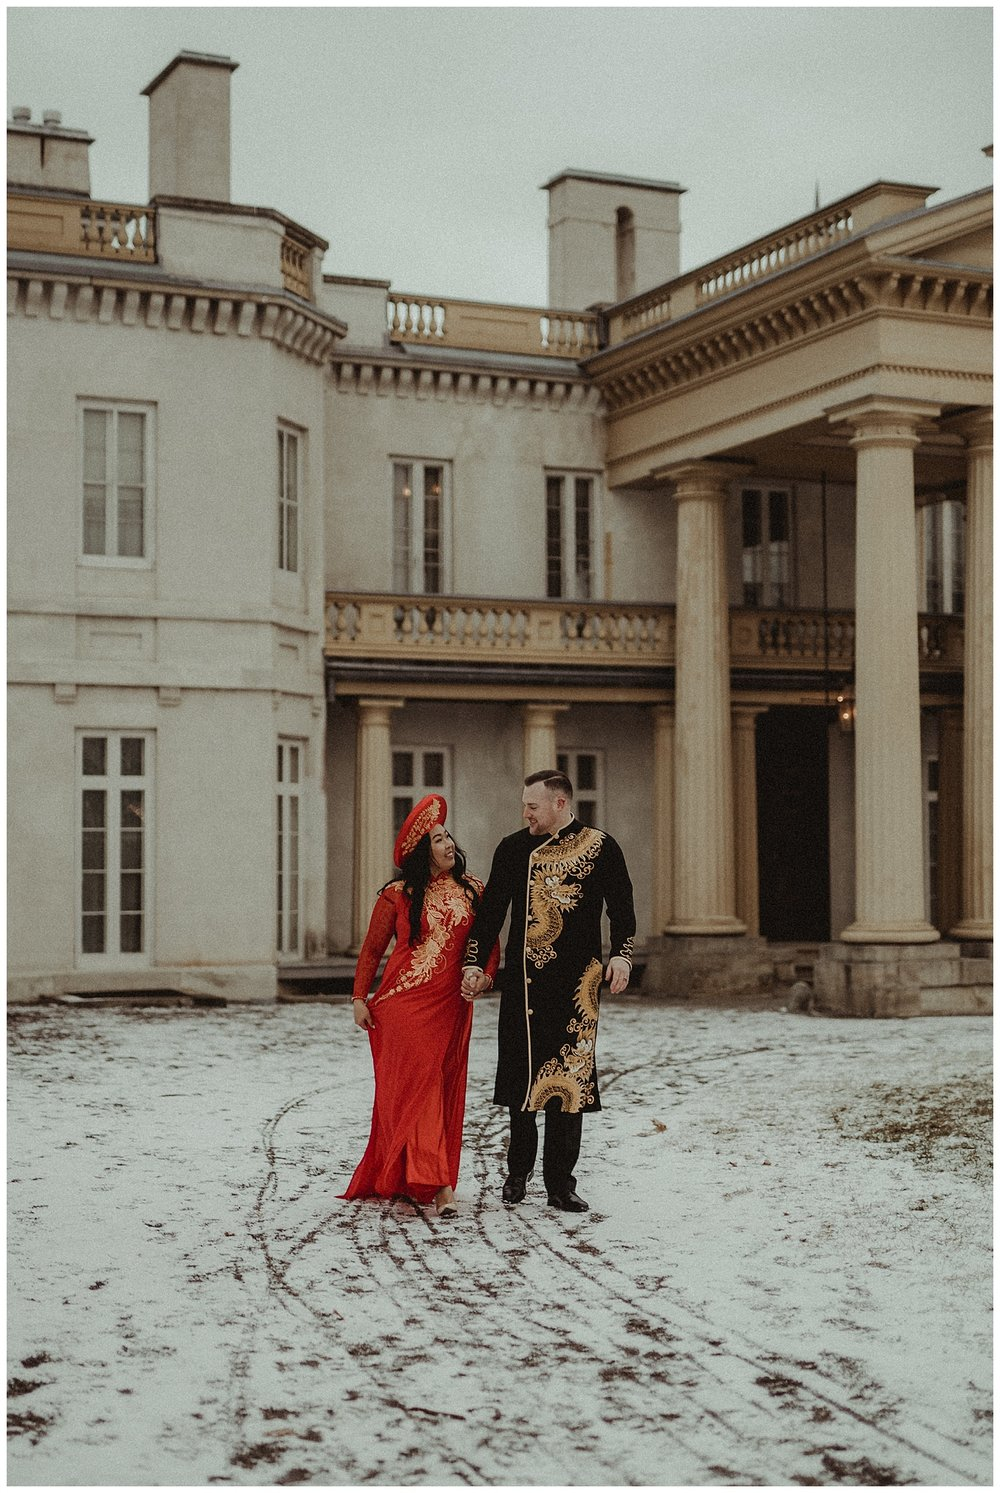 Katie Marie Photography | Hamilton Ontario Wedding Photographer | Hamilton Engagement Session | HamOnt | Vietnamese Engagement Session | Traditional Outfit Engagement Session | Dundurn Castle_0038.jpg